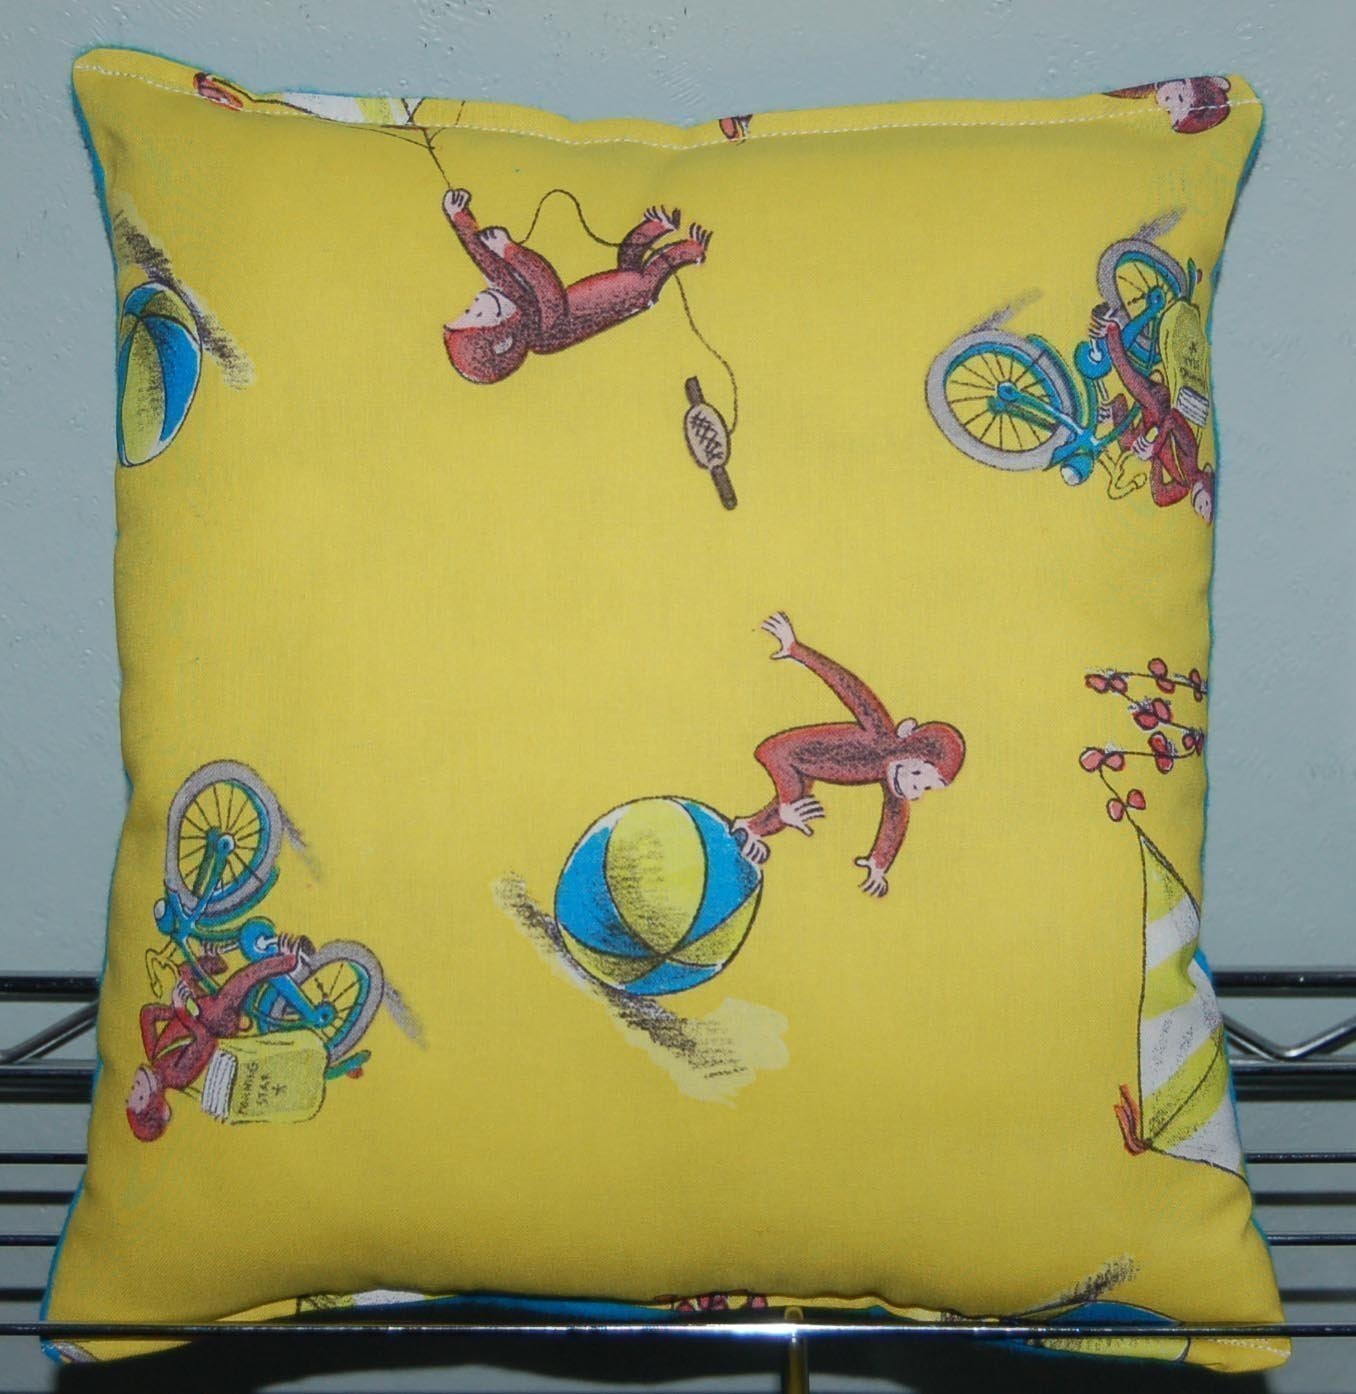 "Curious George Pillow Classic Curious George Pillow HANDMADE In USA Pillow is approximately 10"" X 11"